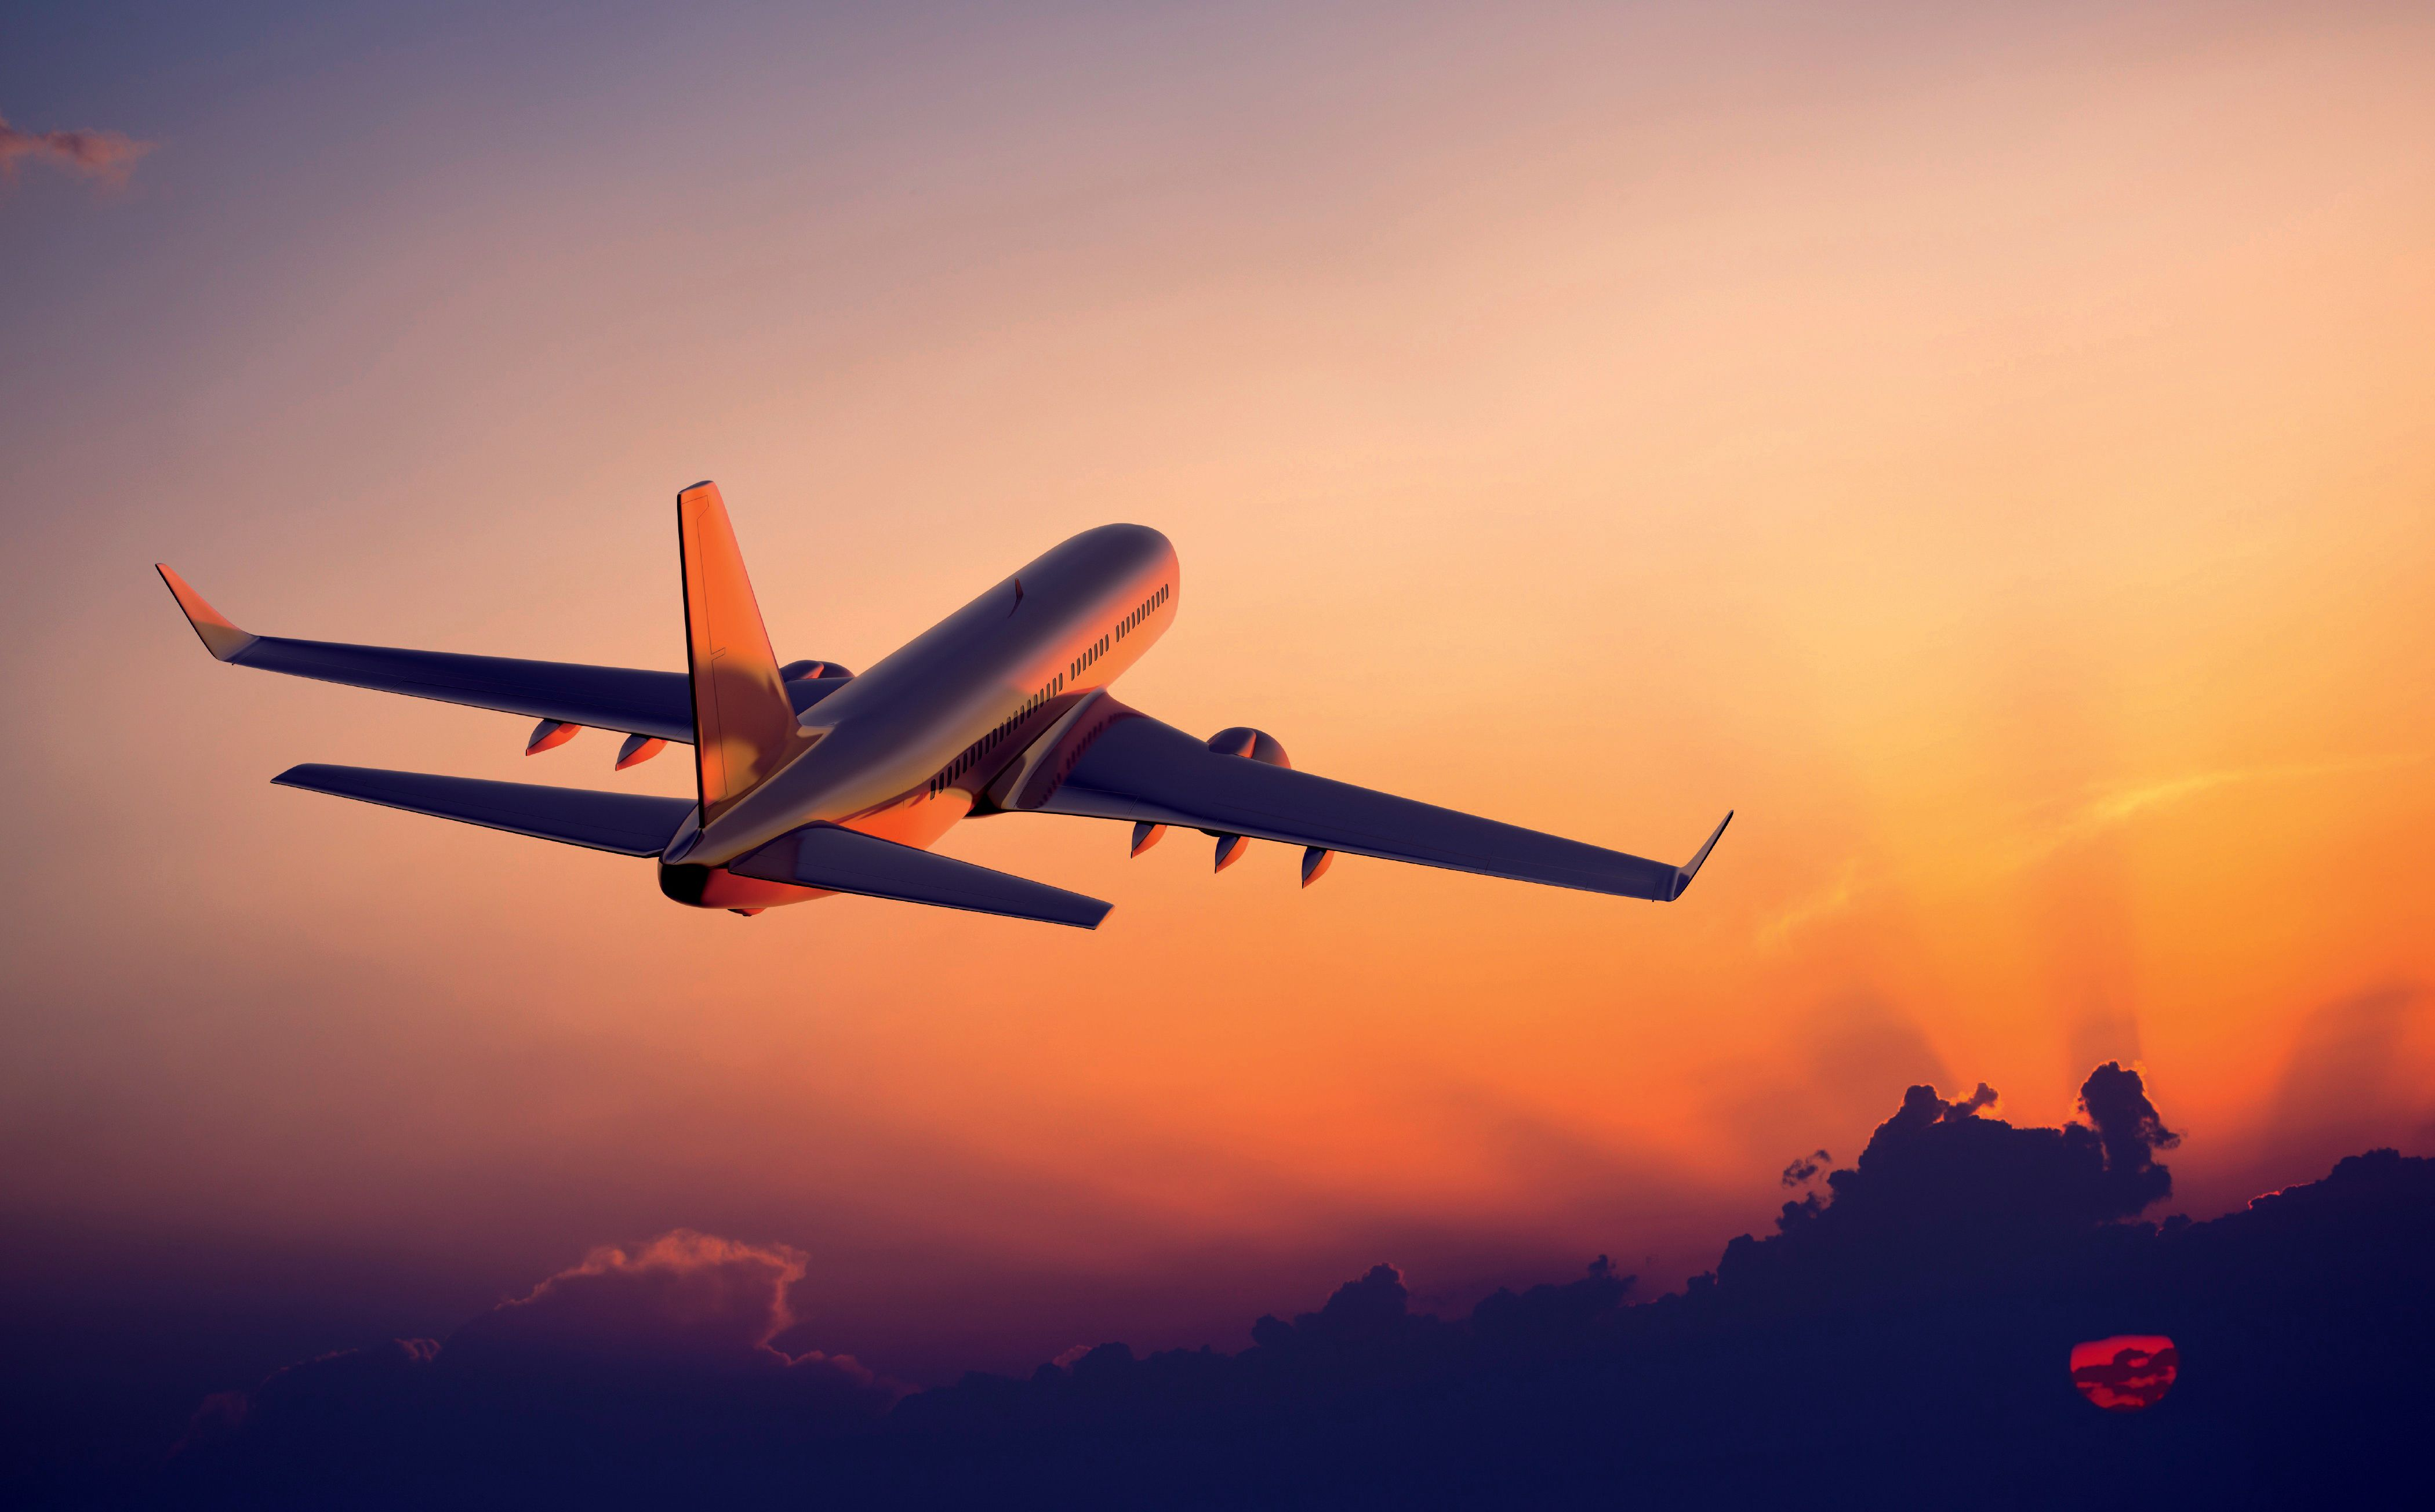 Travel Airplane Wallpapers   Top Travel Airplane Backgrounds 4200x2608